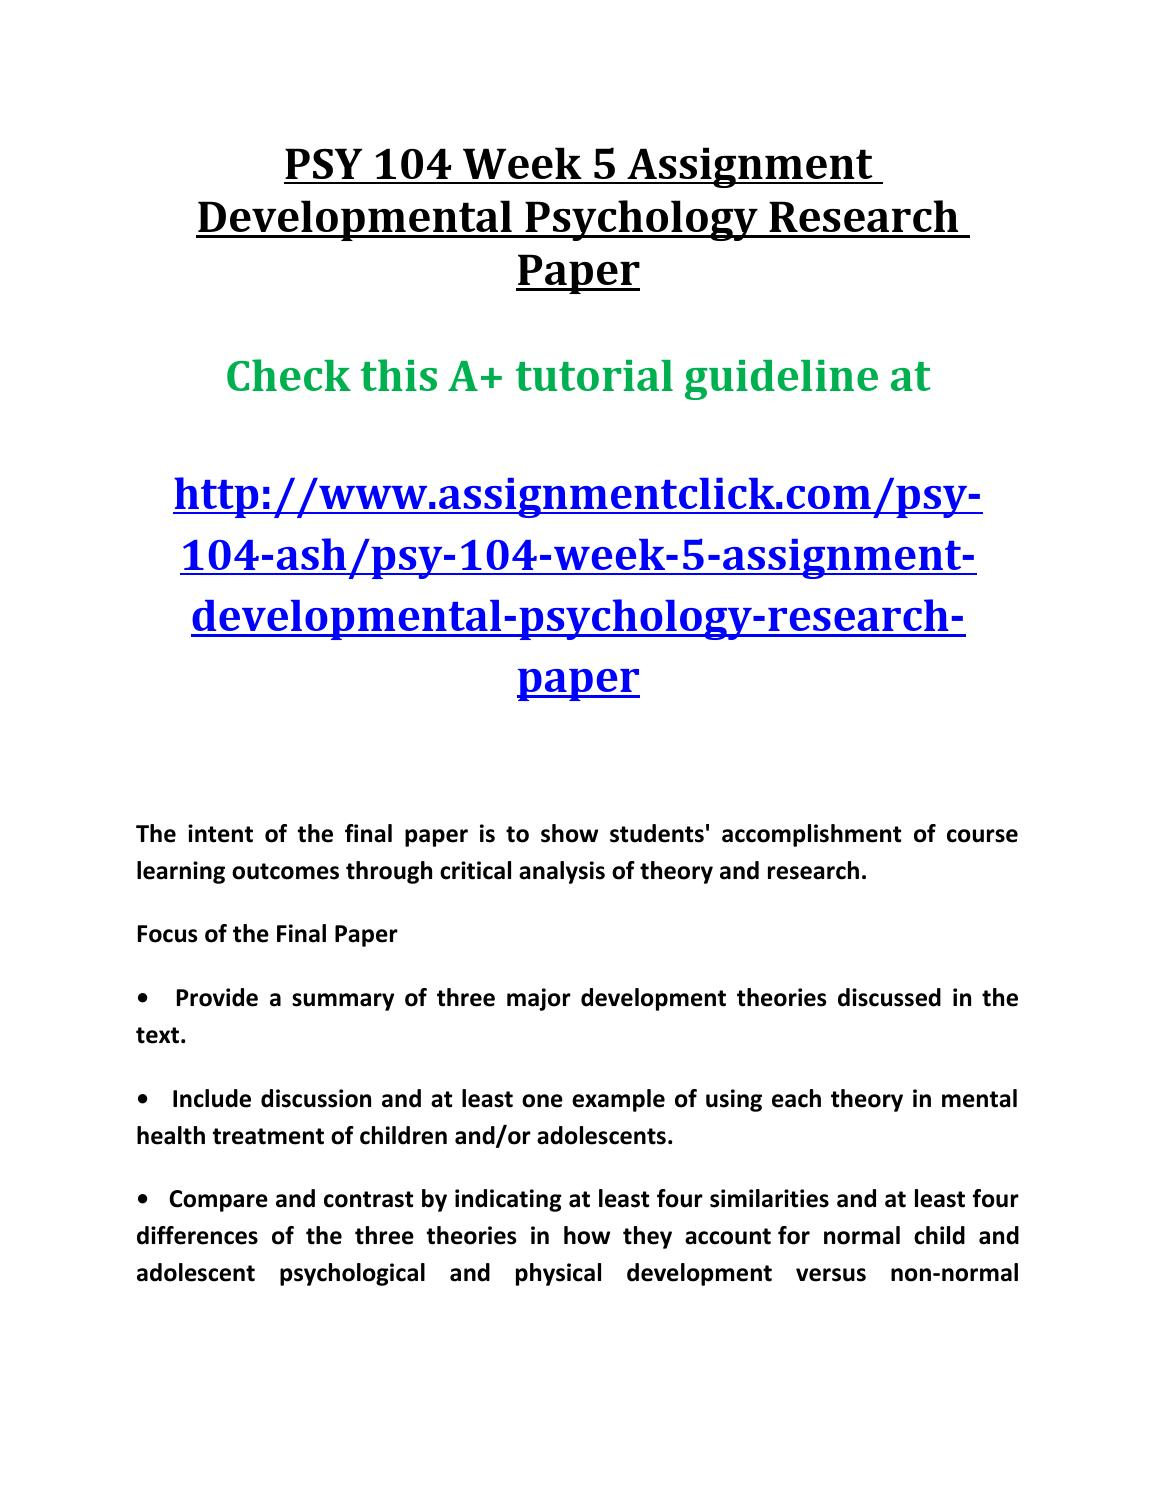 008 Developmental Psychology Research Paper Example Page 1 Sensational Sample Full